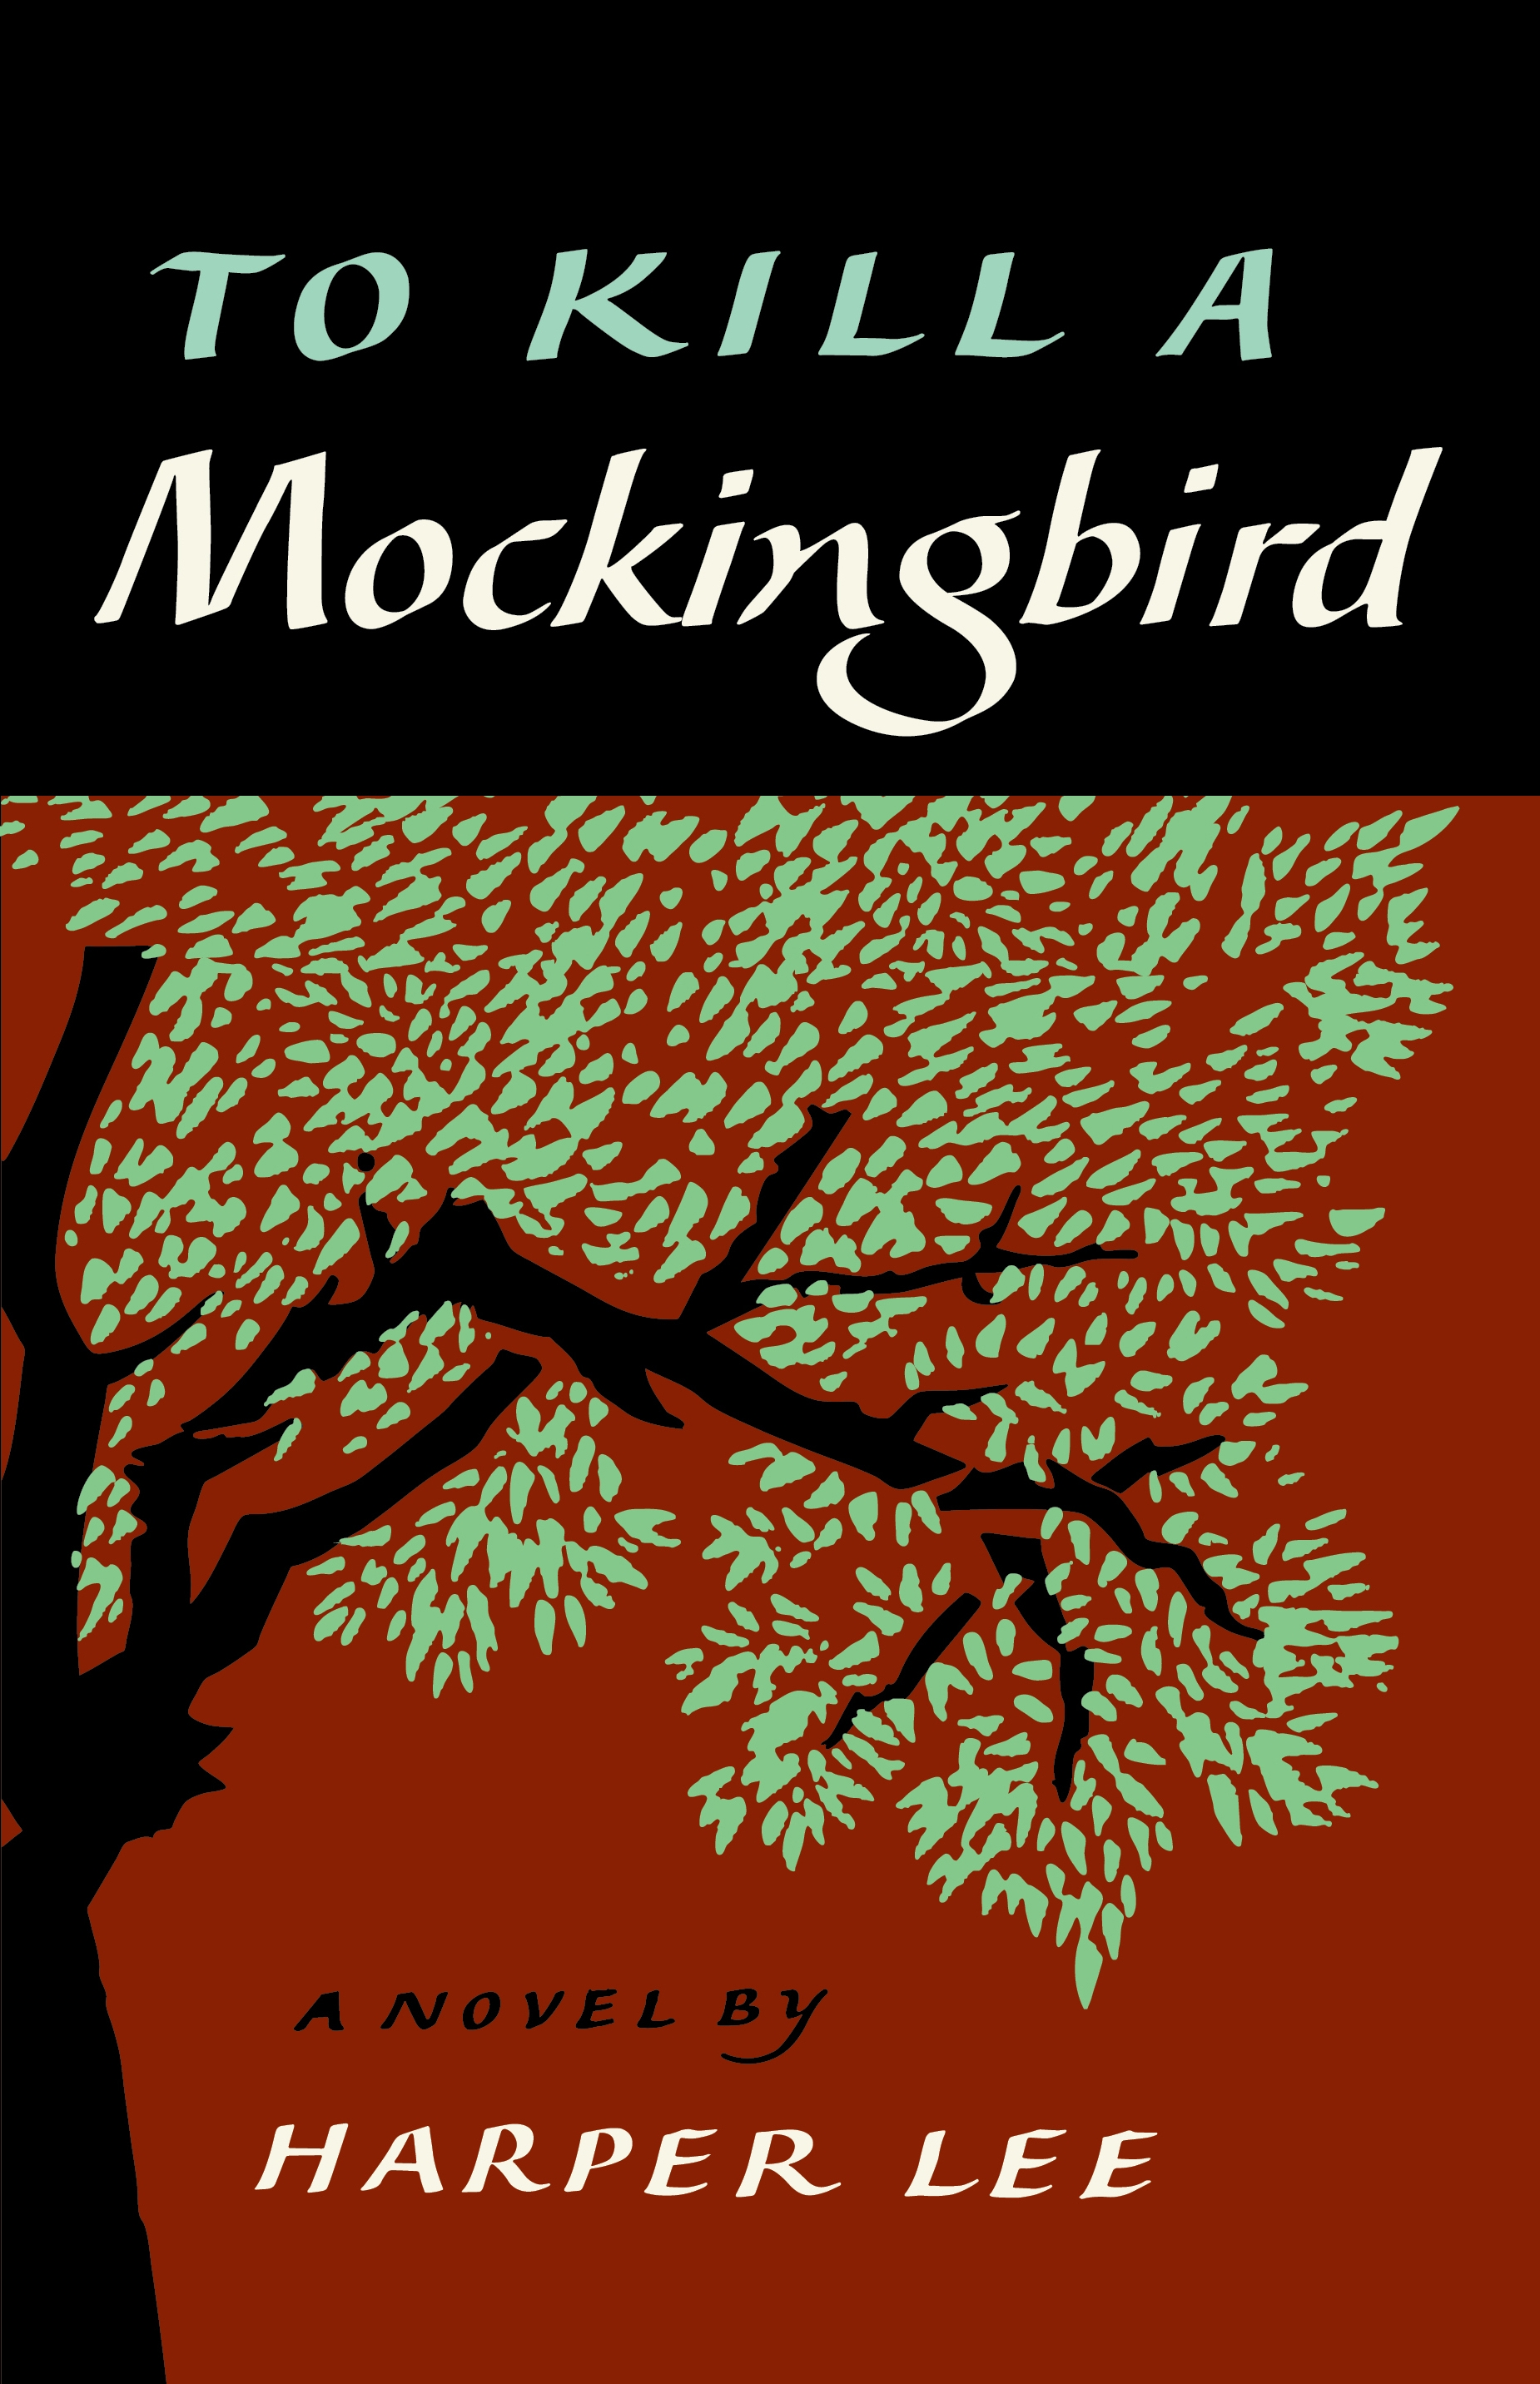 society norms vs individuality in to kill a mockingbird by harper lee Harper lee's to kill a mockingbird has become one of the most popular modern novels since publication in 1960, selling more than 40 million copies for years lee maintained she wouldn't – or.